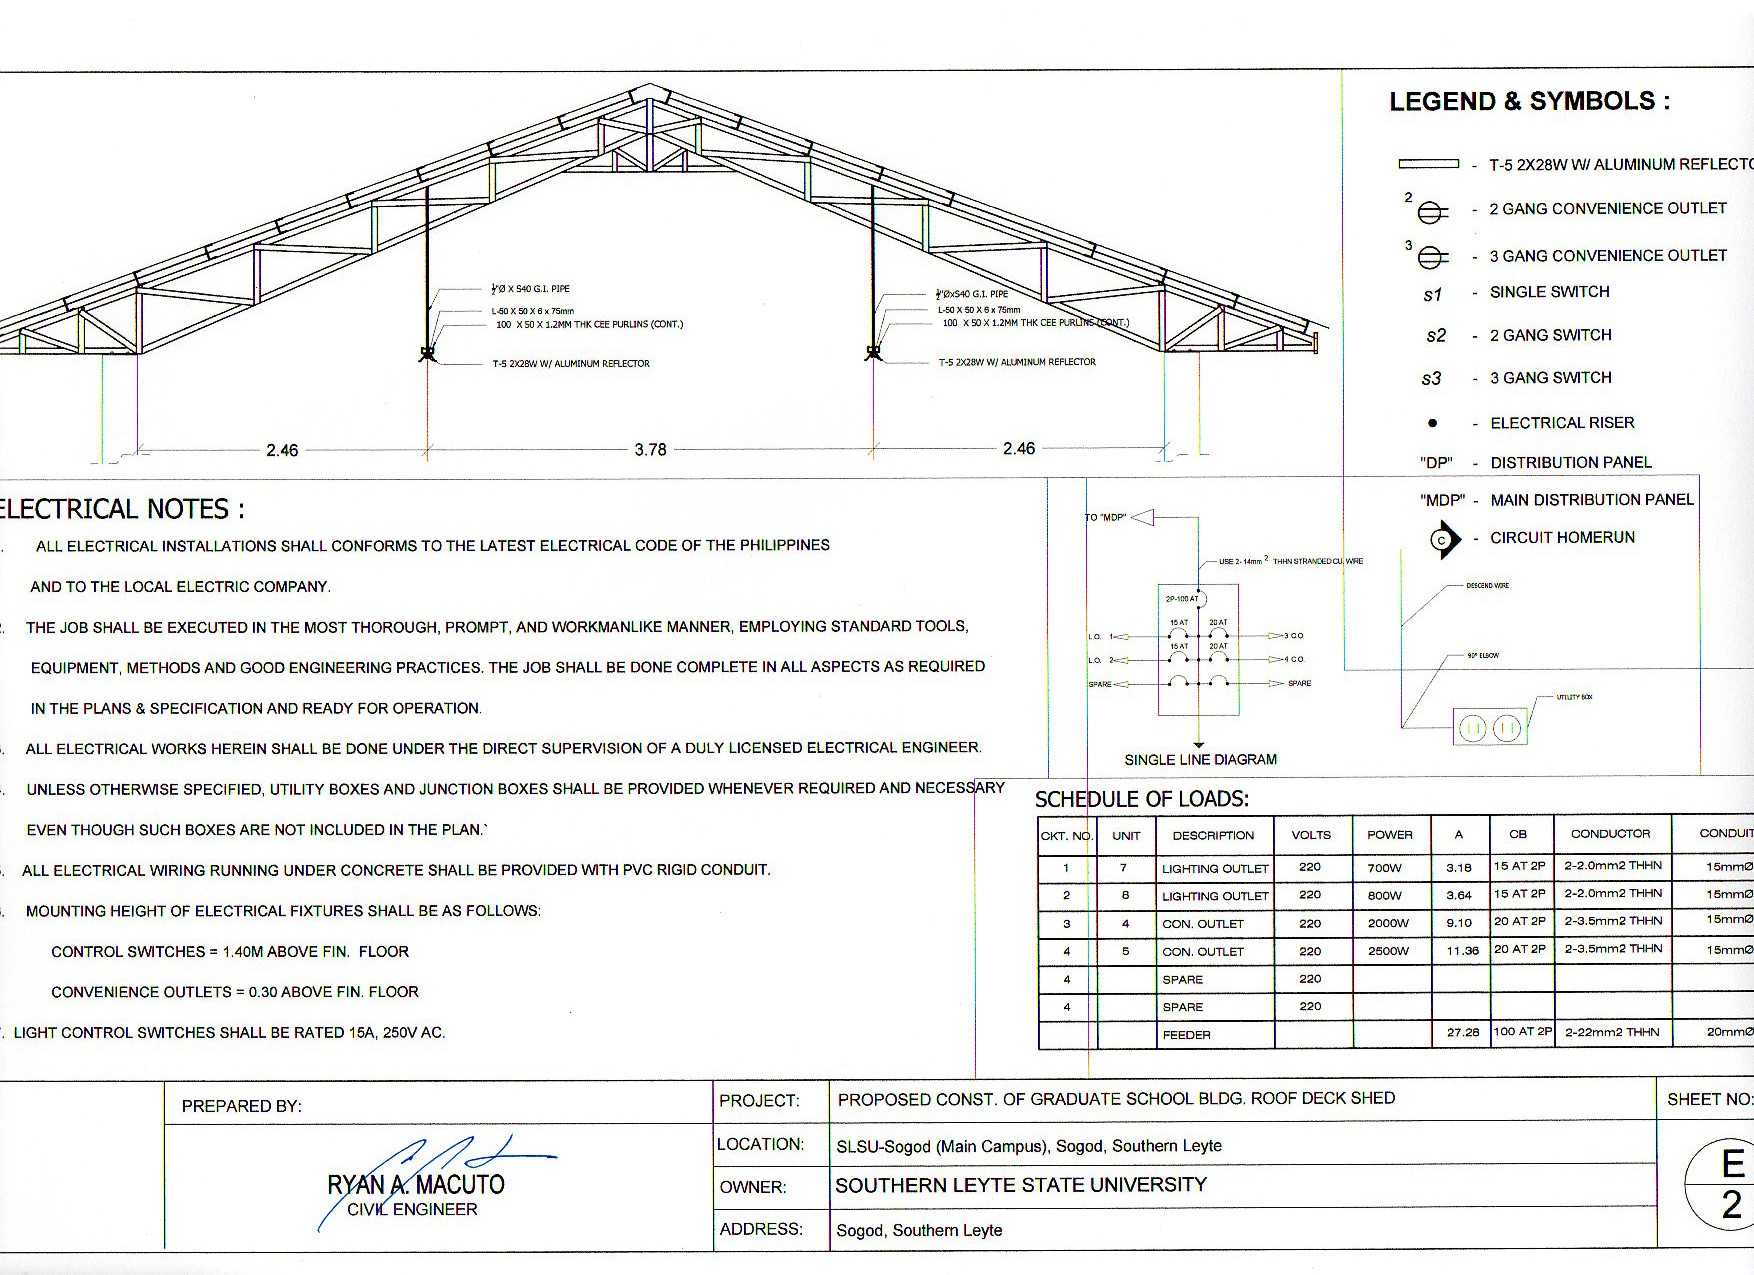 Invitation To Bid For The Construction Of Graduate School Building Basic Electrical Wiring Diagrams Deck Lights Outlets 100 Download This File Power And Lighting Layout E2